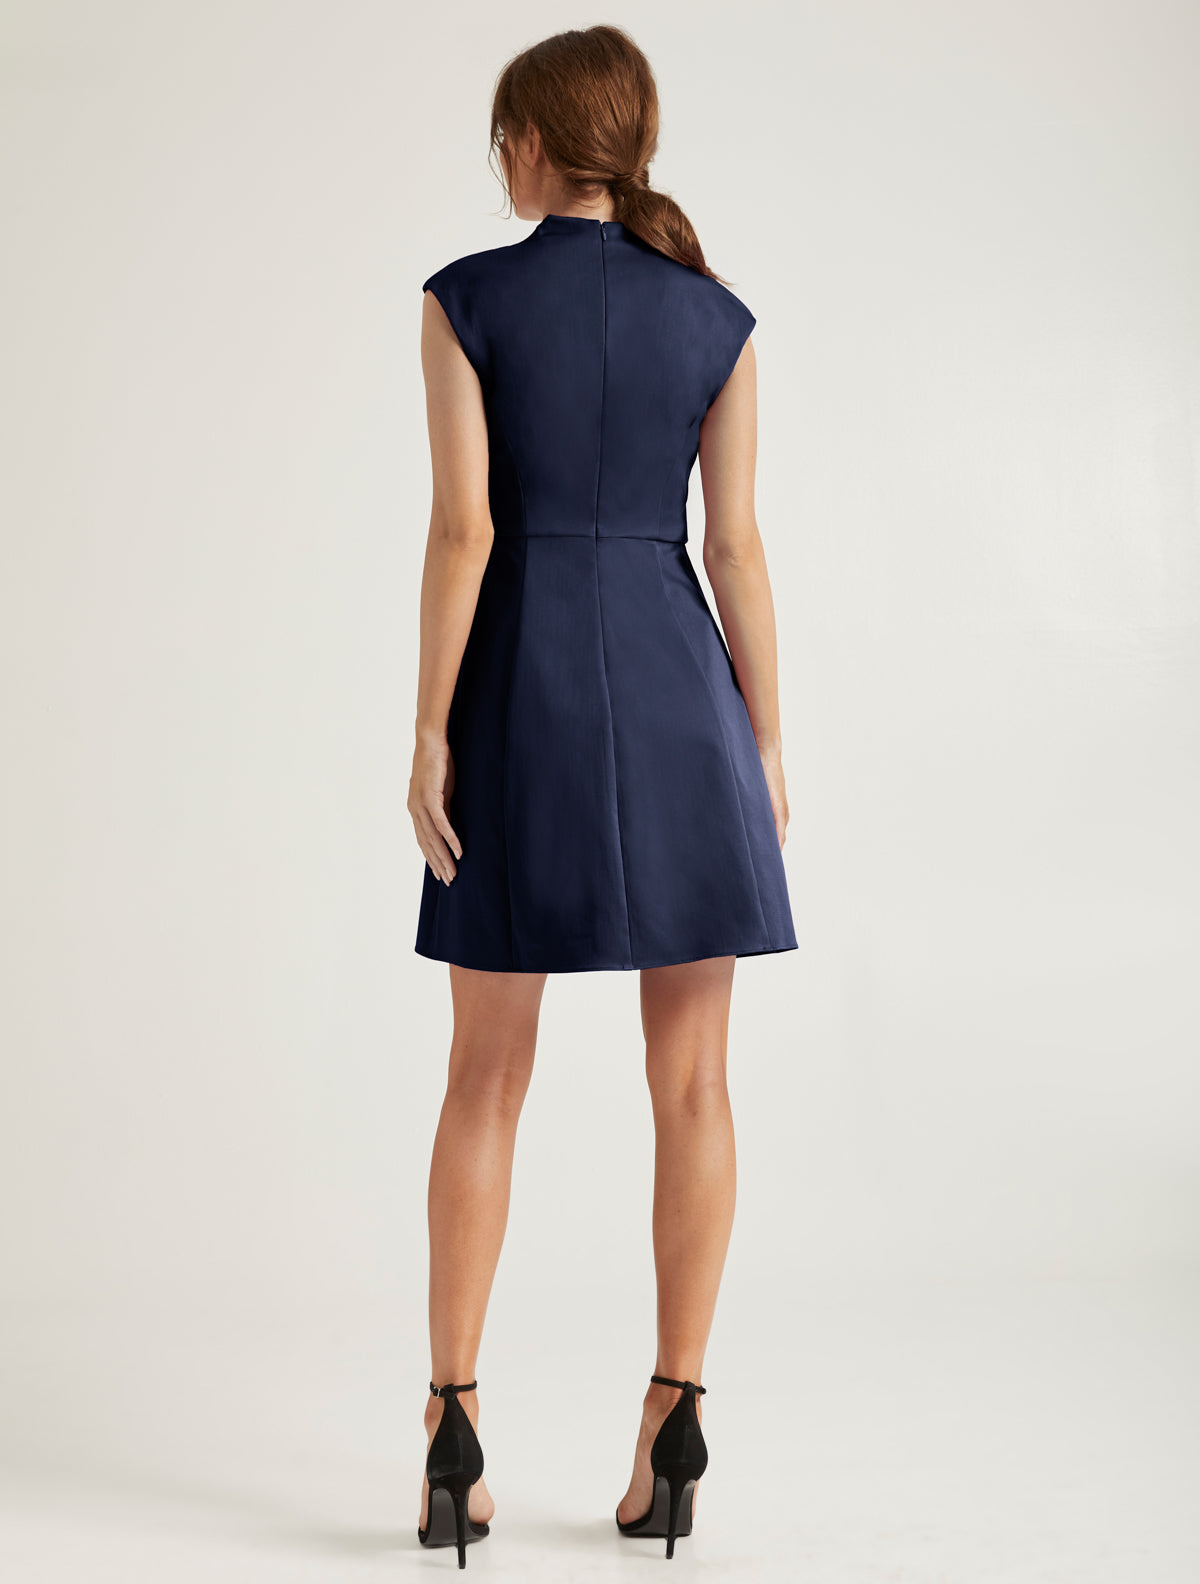 Organic Notch Dress - Halston